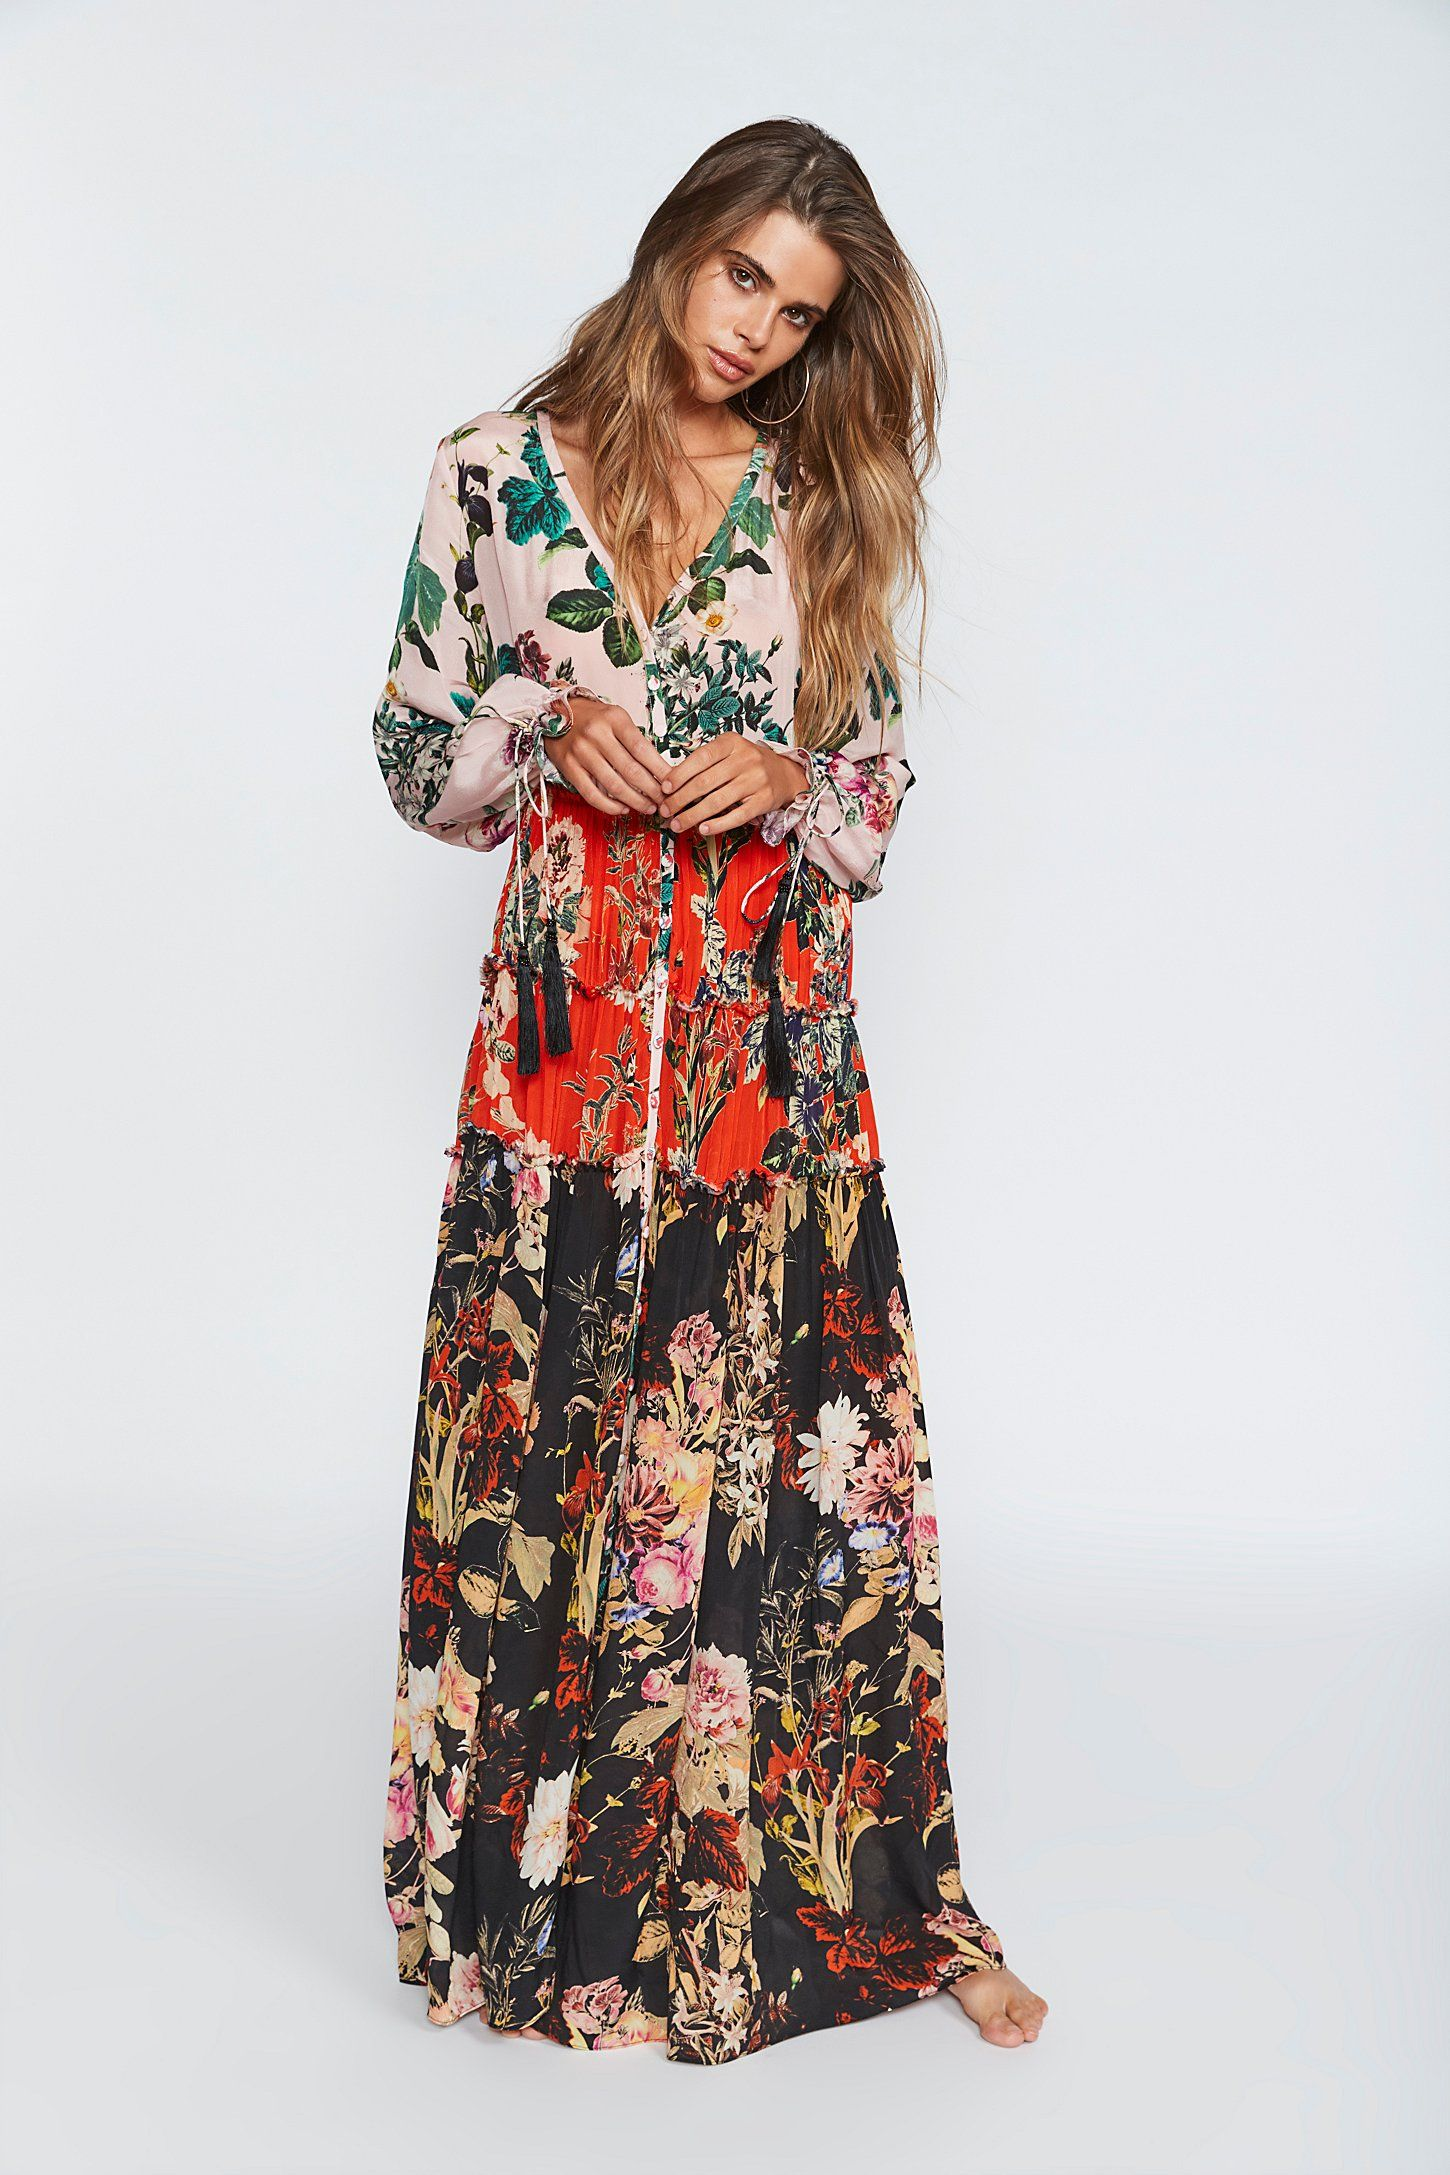 323a20ee42b7 Shop our Mixed Floral Maxi Dress at Free People.com. Share style pics with  FP Me, and read & post reviews. Free shipping worldwide - see site for  details.